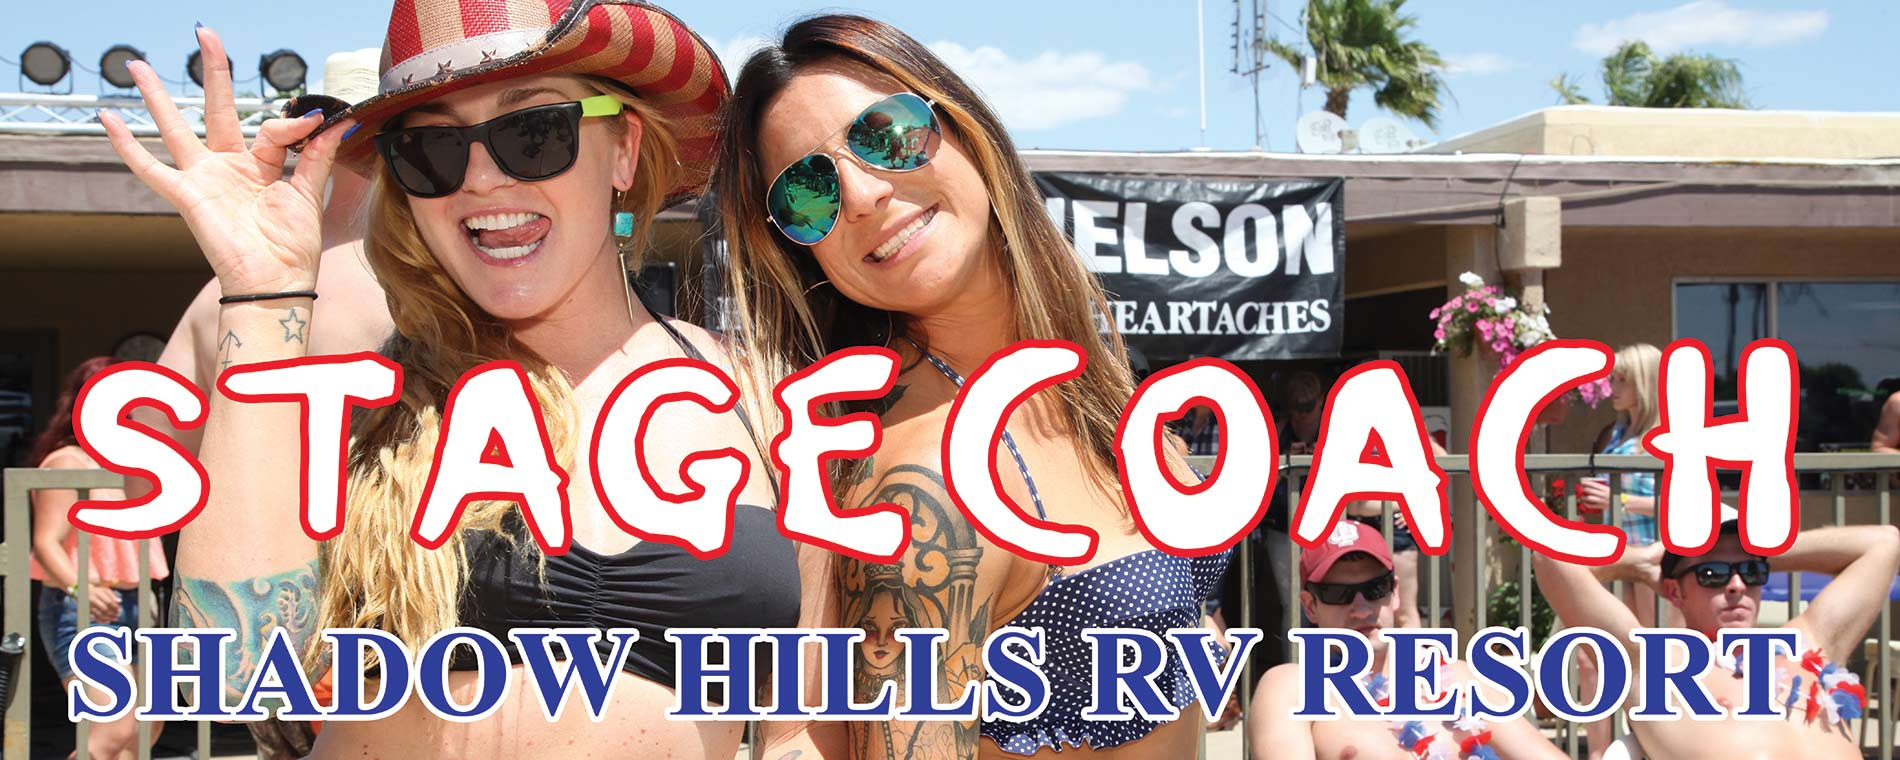 Stagecoach Camping At Top Rated Shadow Hills Rv Resort